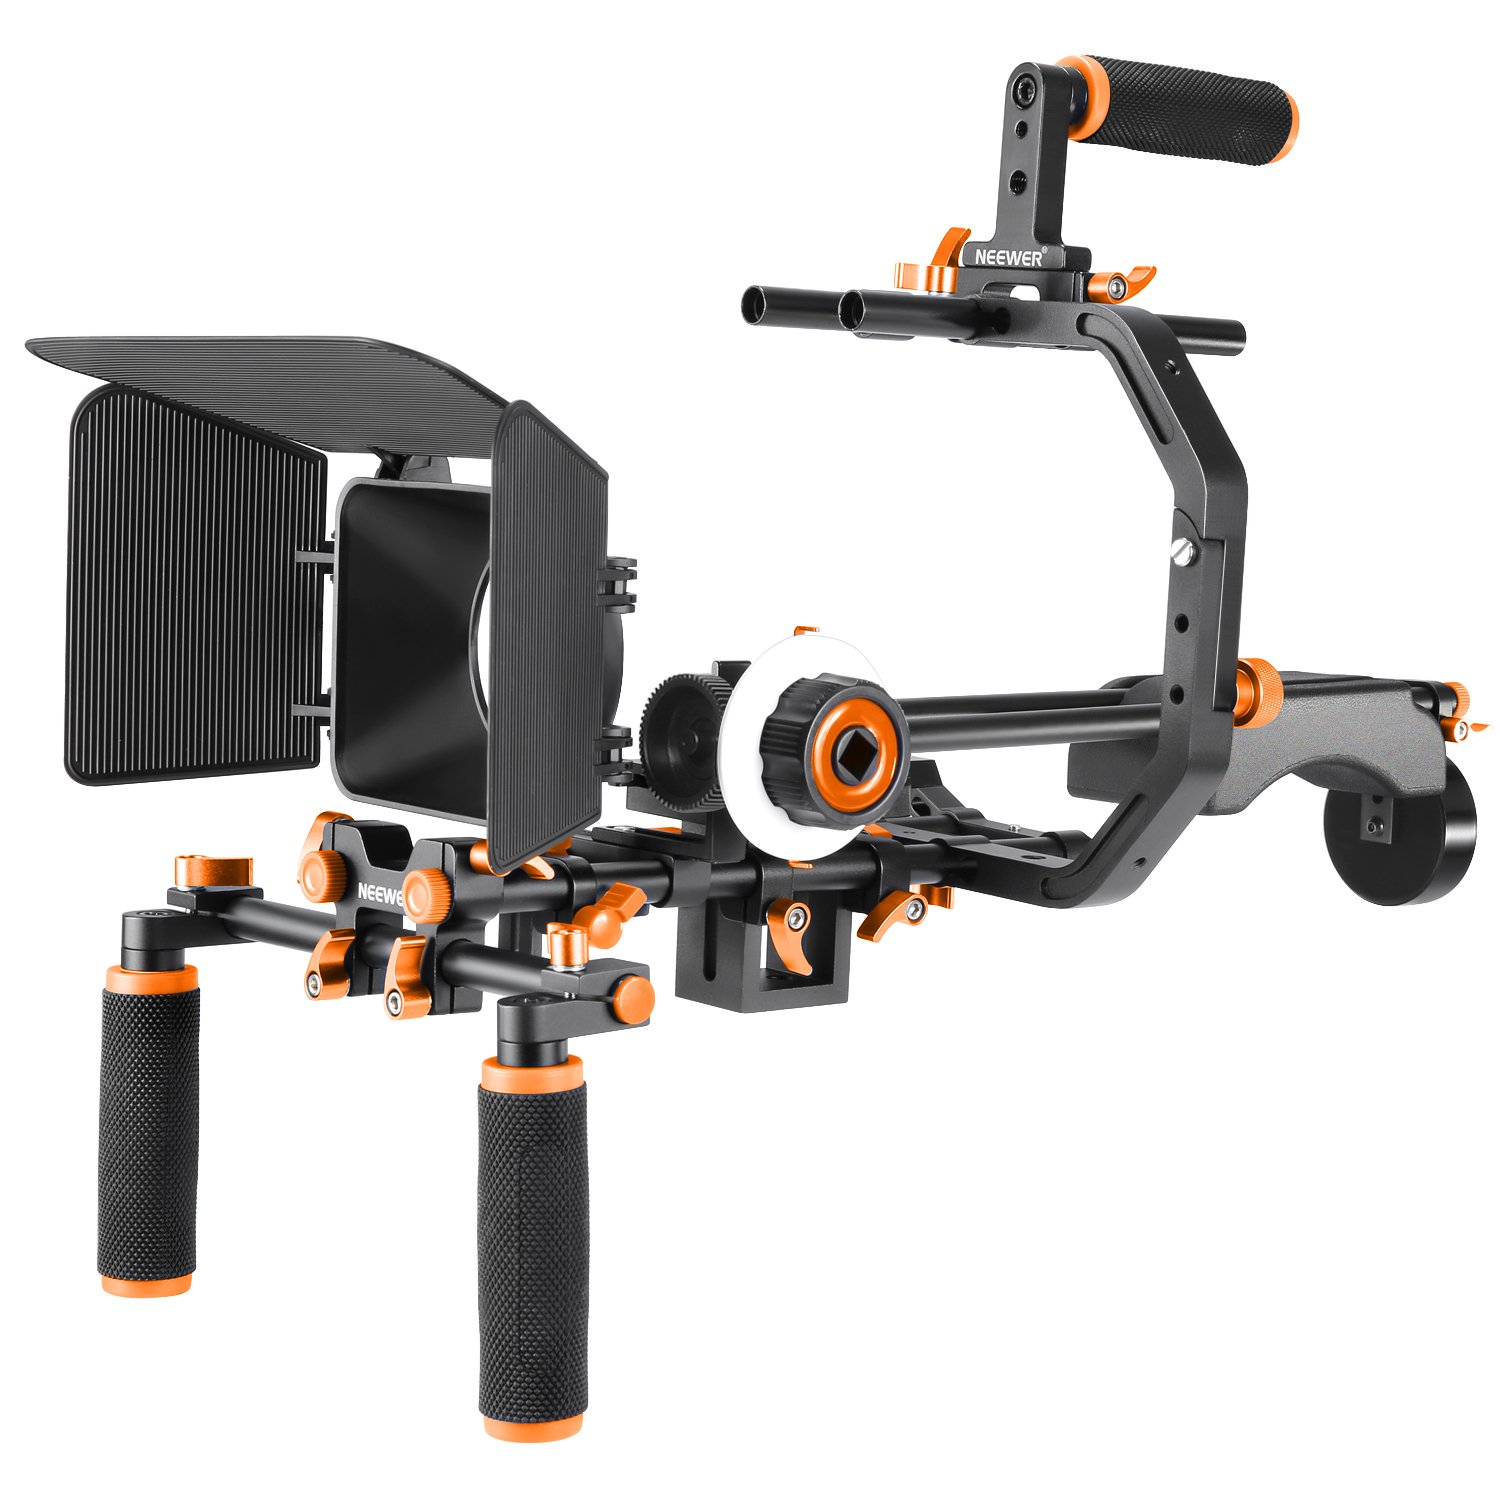 Neewer Film Movie System Kit Video Making System for Canon/Nikon/Sony and other DSLR Cameras, includes:(1) C-shaped Bracket+(1) Handle Grip+(2)15mm Rod+(1) Matte Box+(1) Follow Focus+(1) Shoulder Rig 10086749